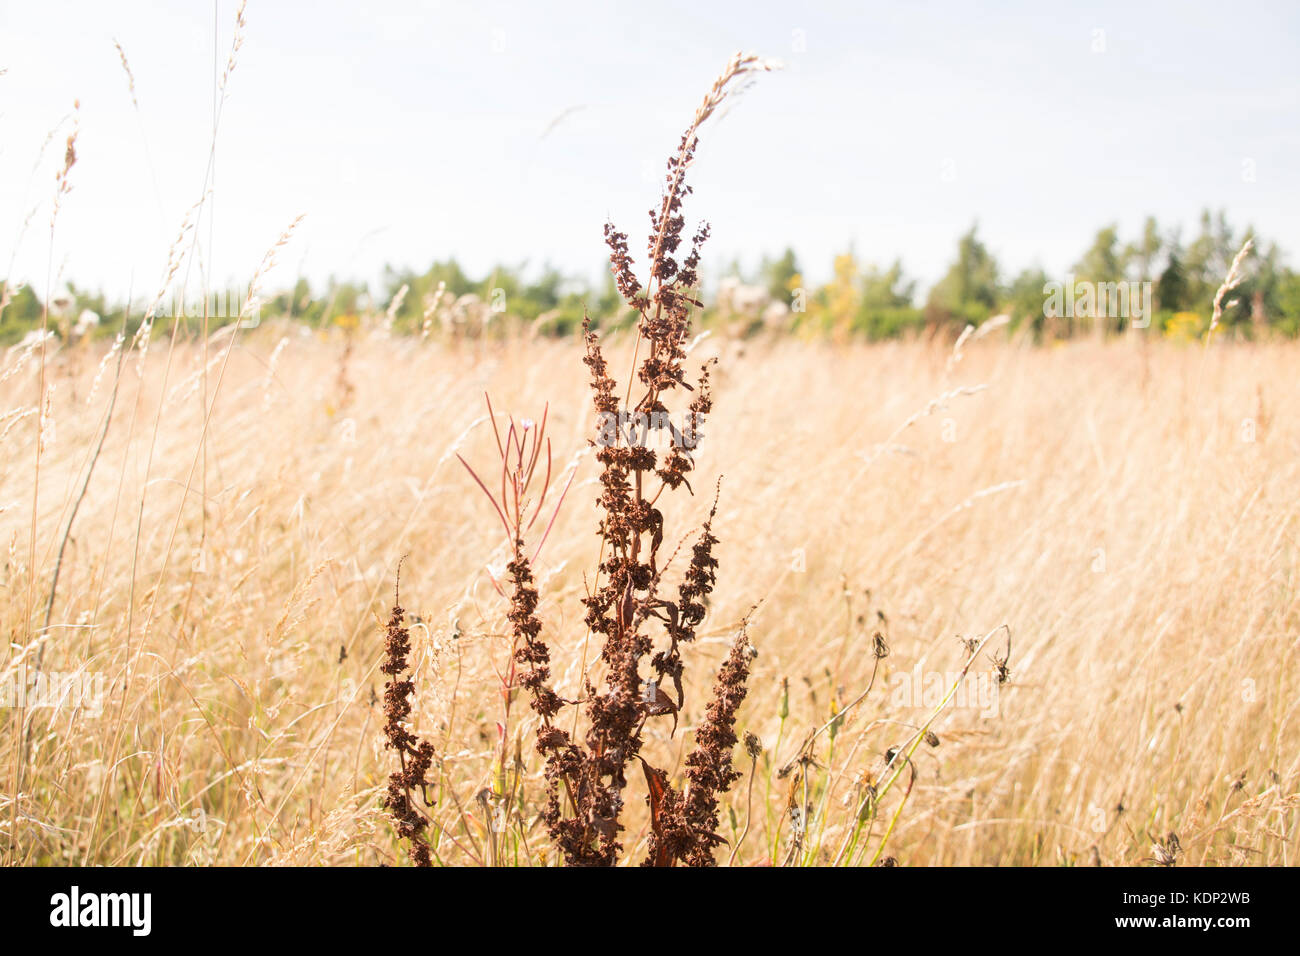 Weed In Farmers Field, Taken on the 15th August 2016 in Mansfield Town On a day when we had a heat wave and it was - Stock Image